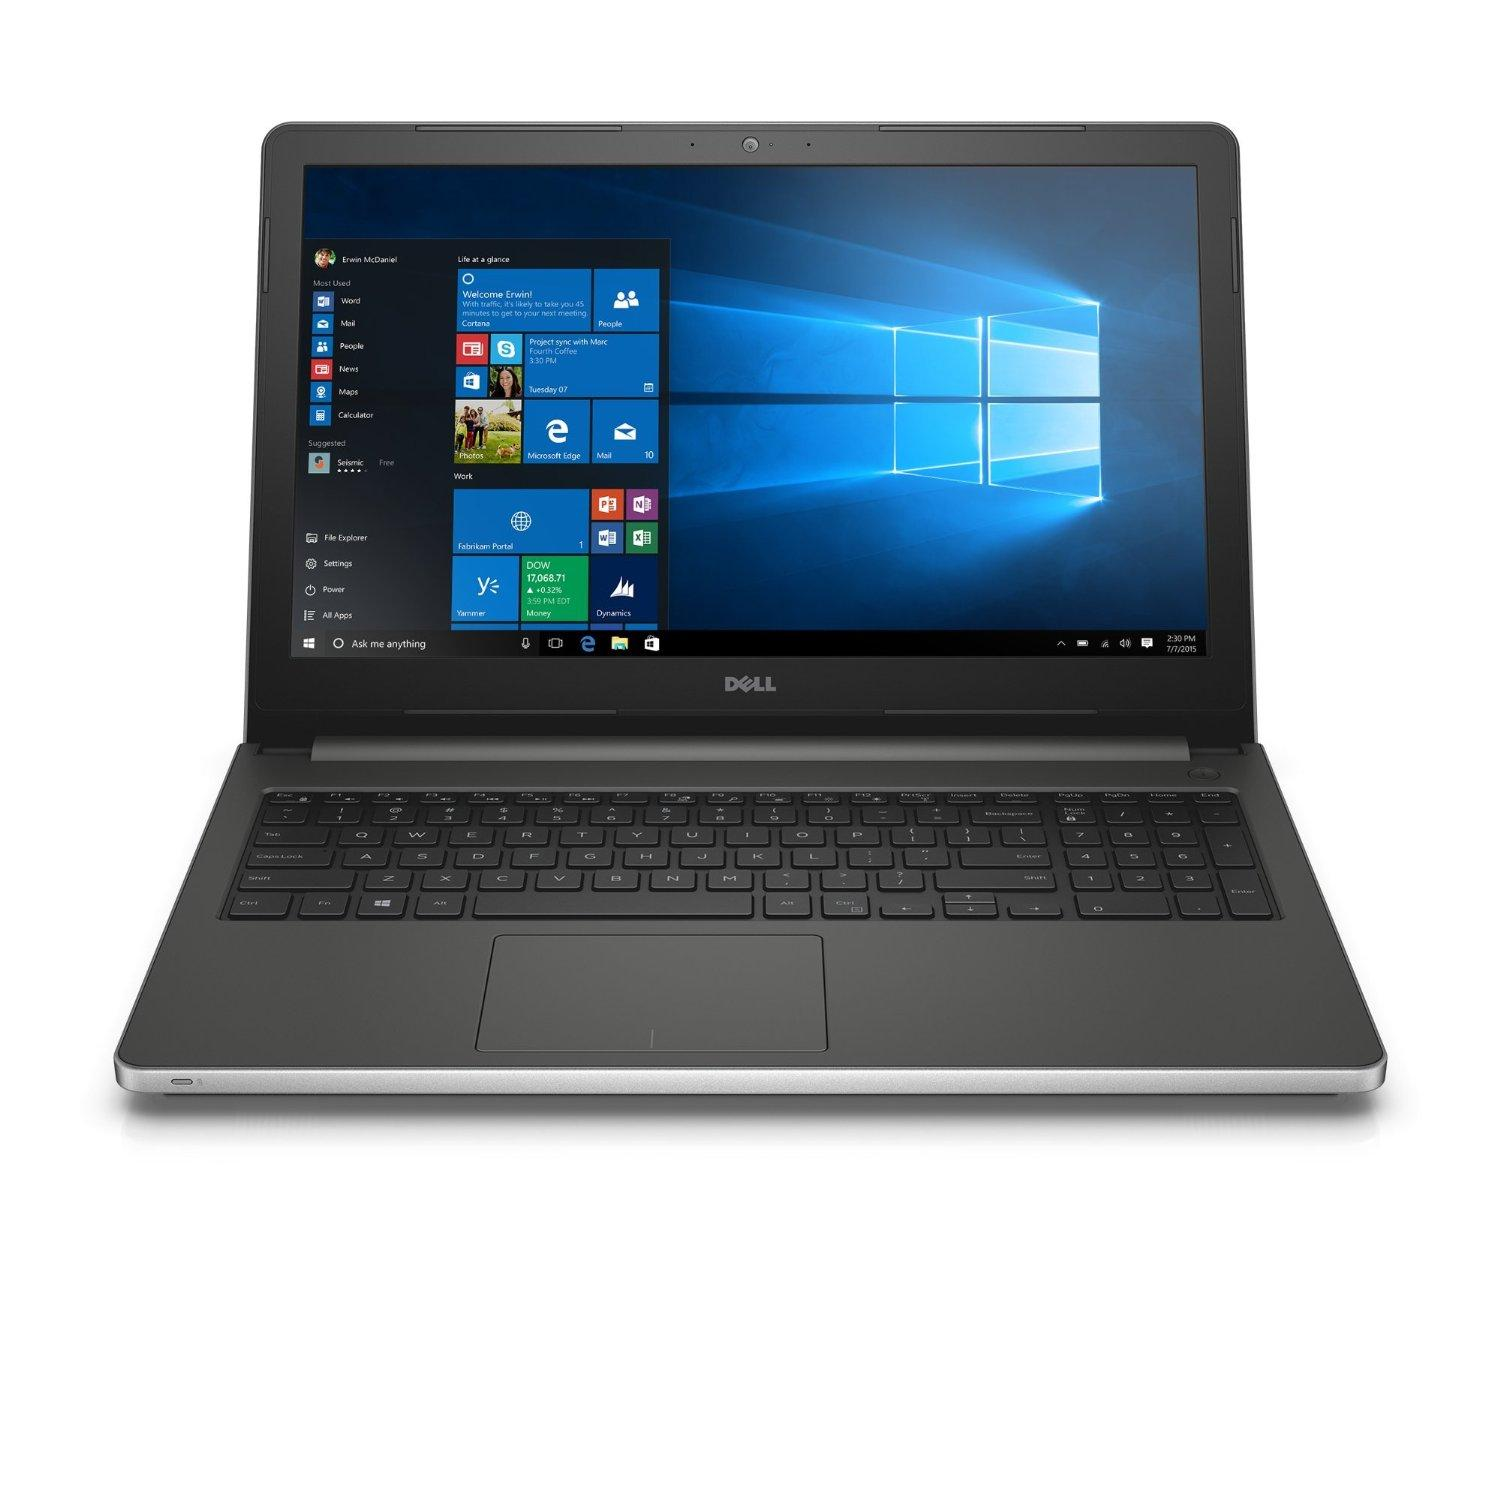 $599.00 Dell Inspiron i5559-5347SLV 15.6 Inch FHD Touchscreen Laptop with Intel RealSense